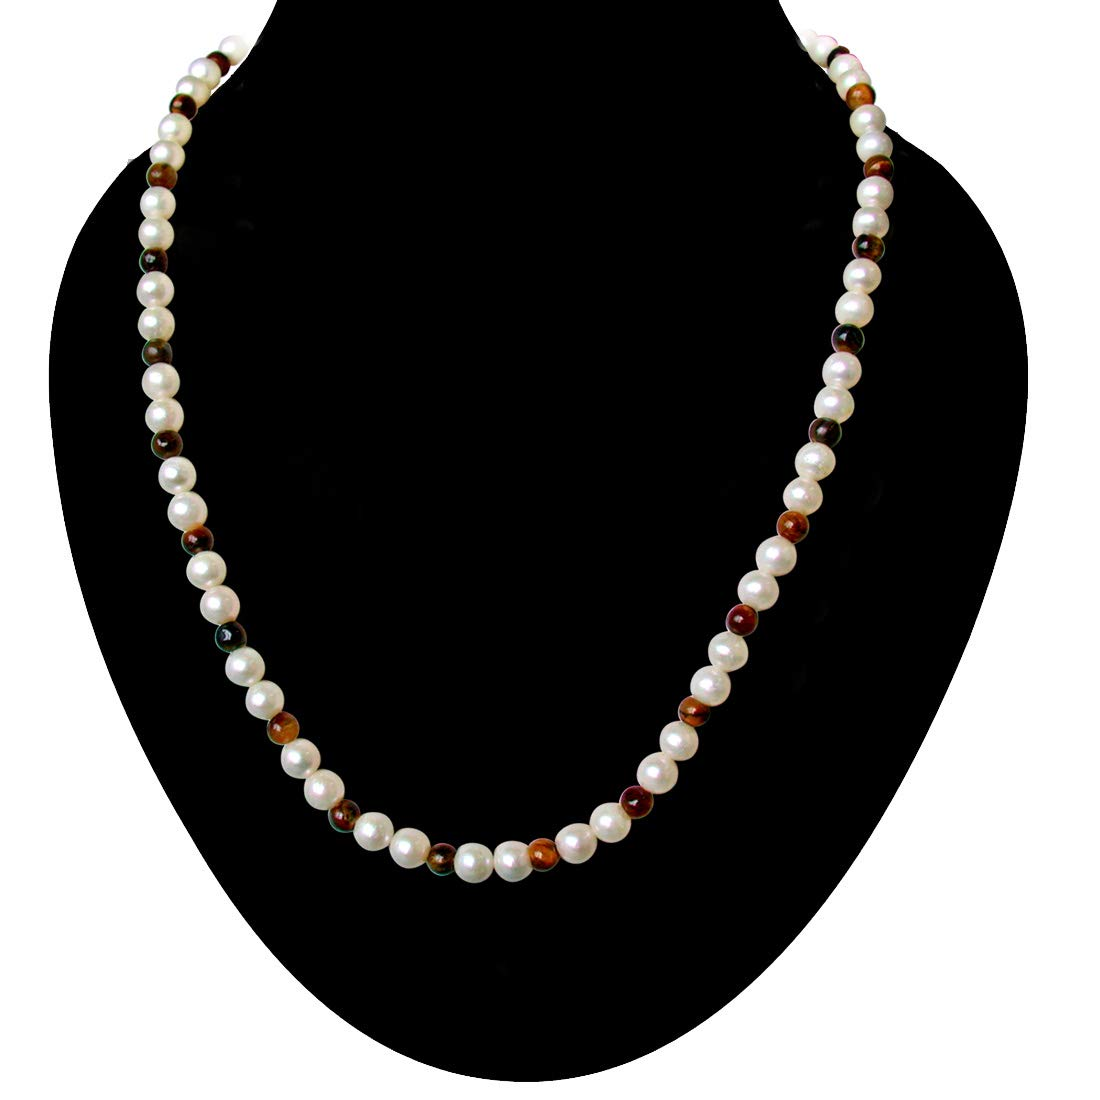 Dandy - Single Line Real Freshwater Pearl & Tiger Eye Beads Necklace for Women (SN14)